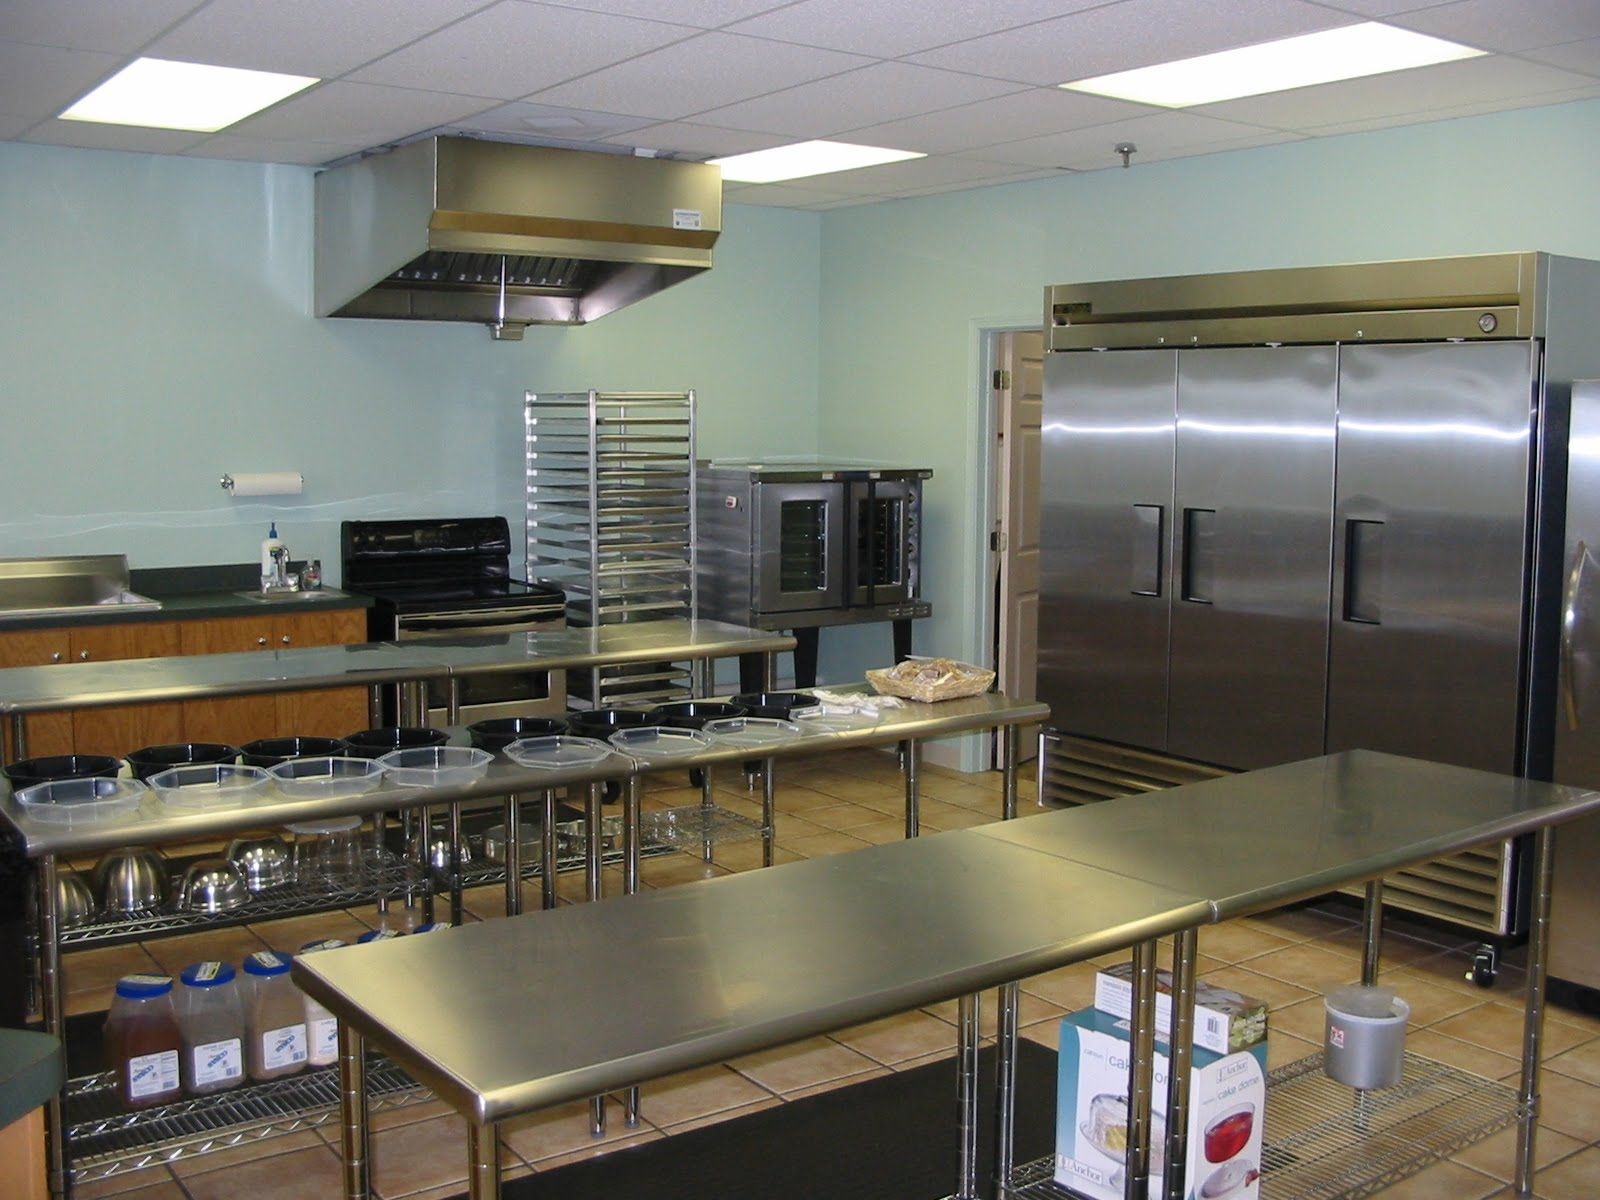 commercial kitchen design commercial kitchen flooring 9 Fascinating Small Commercial Kitchen Pic Ideas